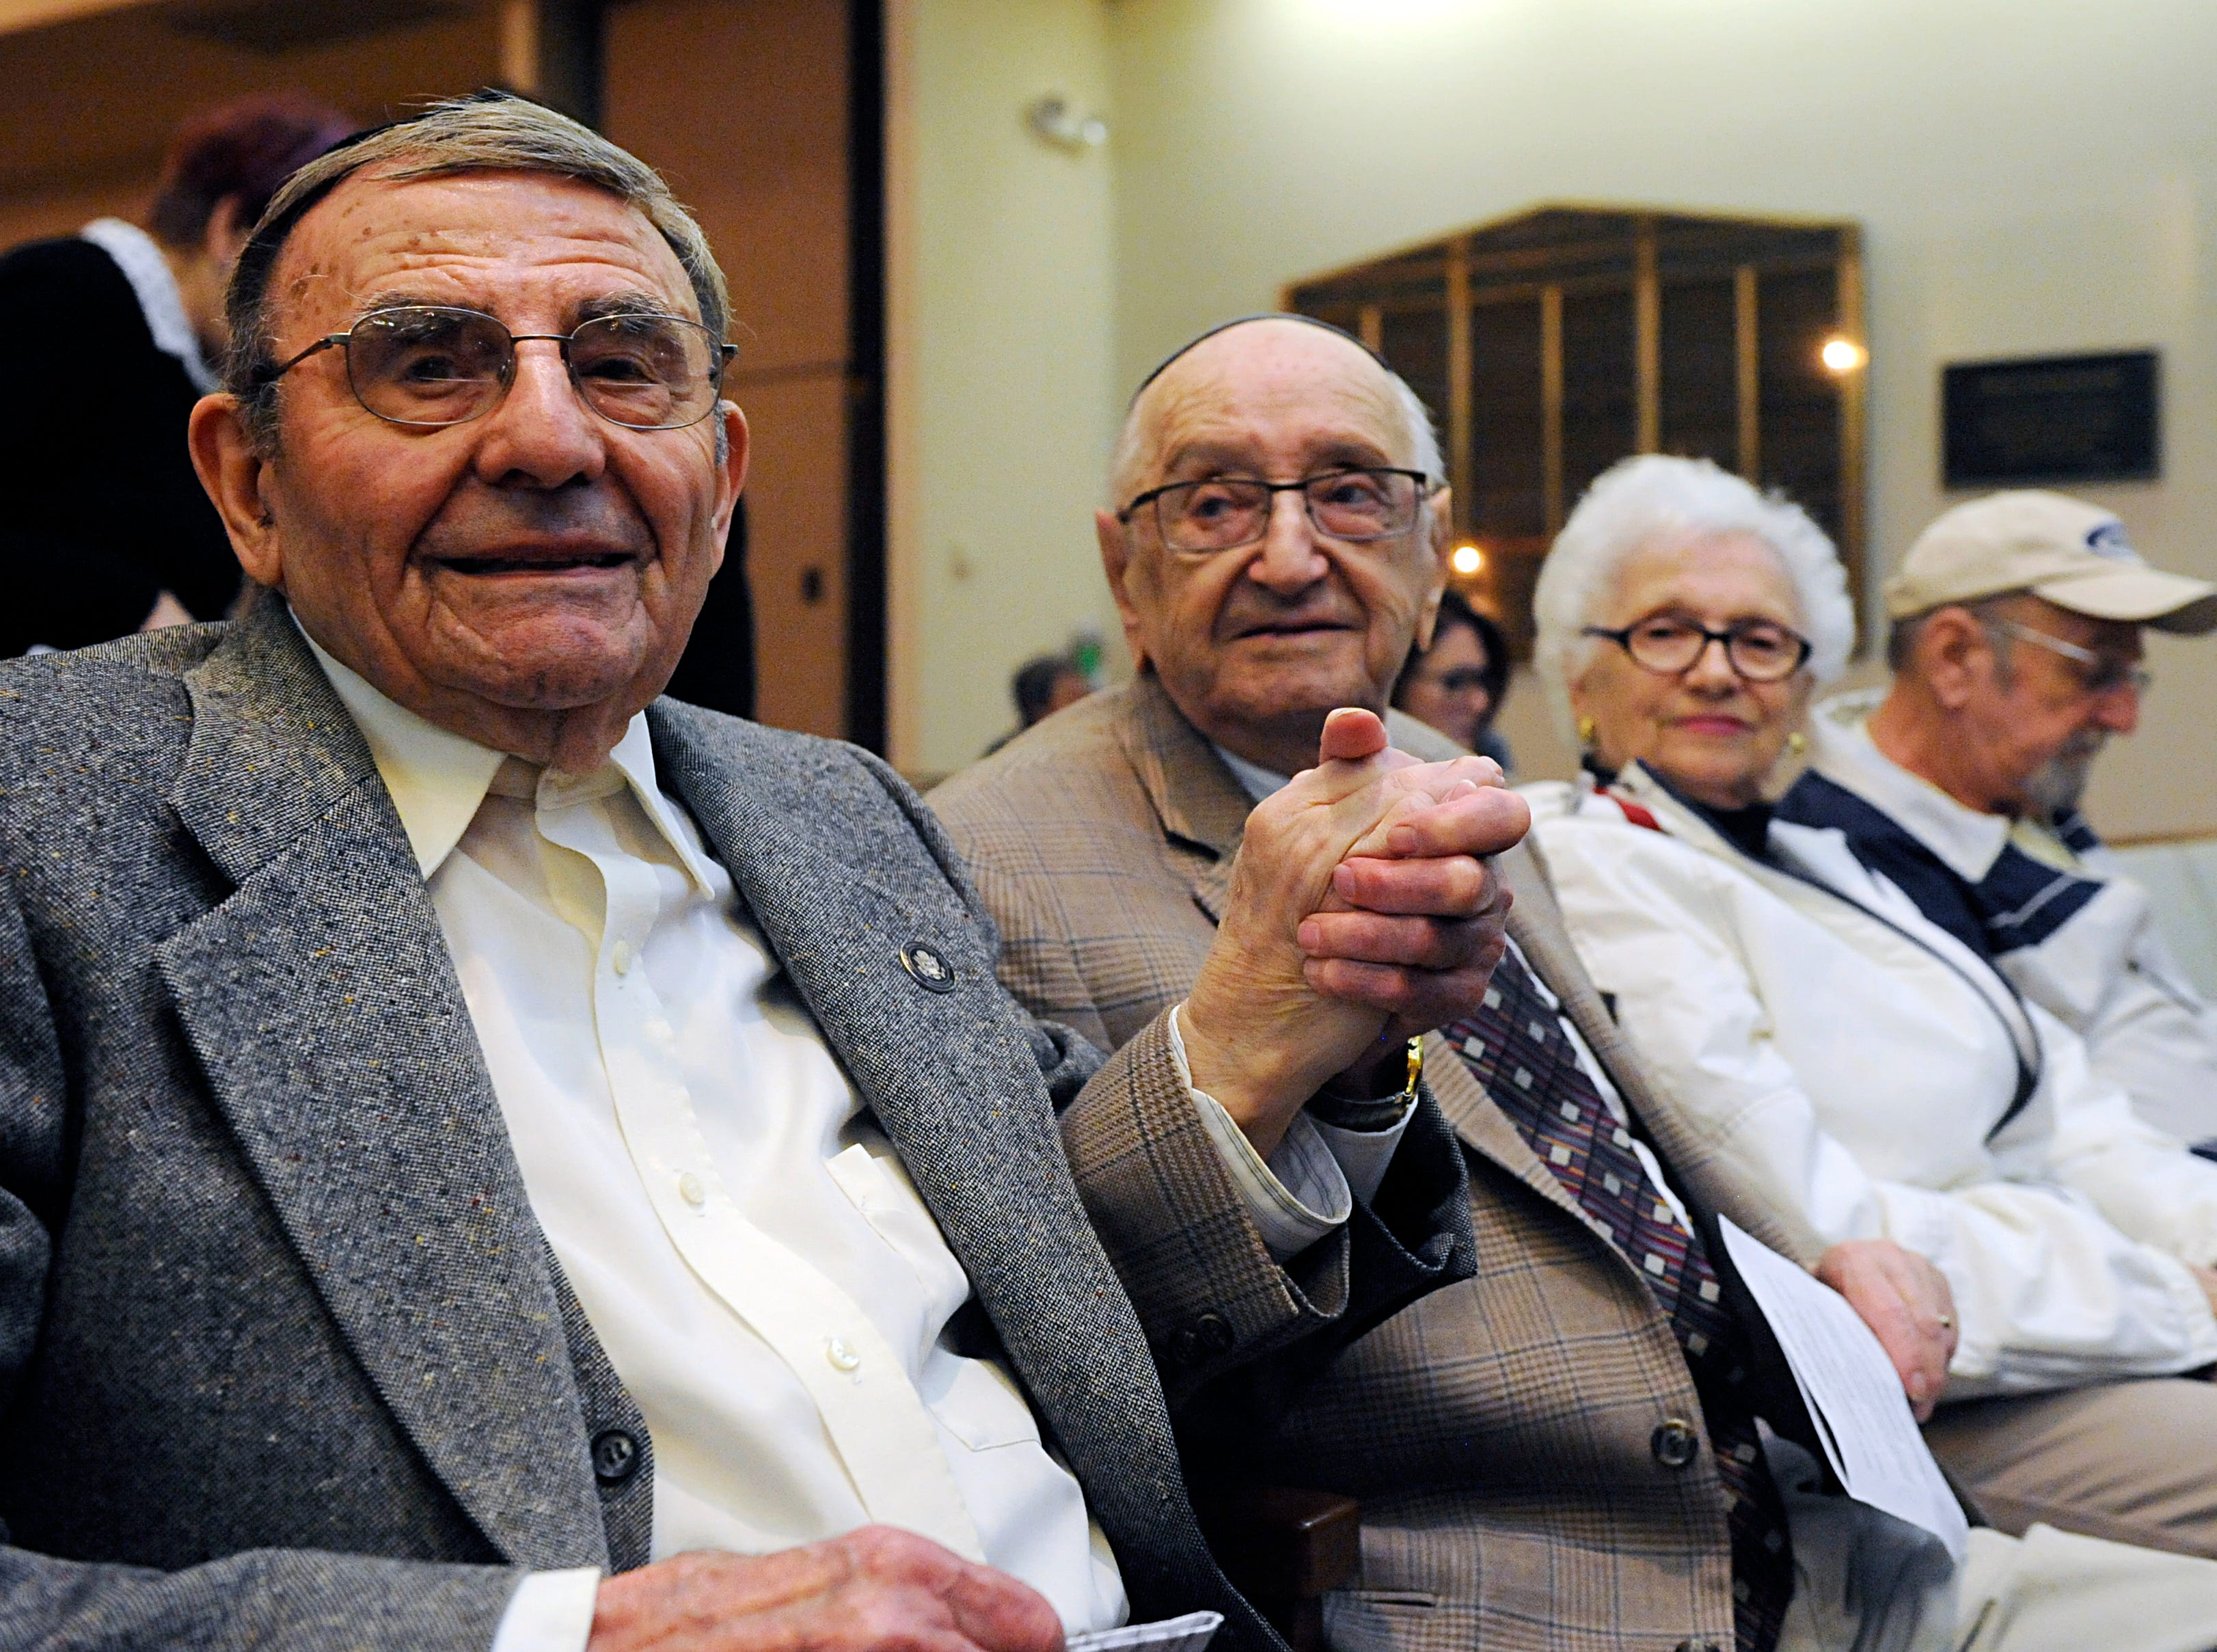 Holocaust survivors Izzy Randel and Murray Ressler clasp hands at Beth Israel Congregation in Vineland in honor of their six decade friendship.